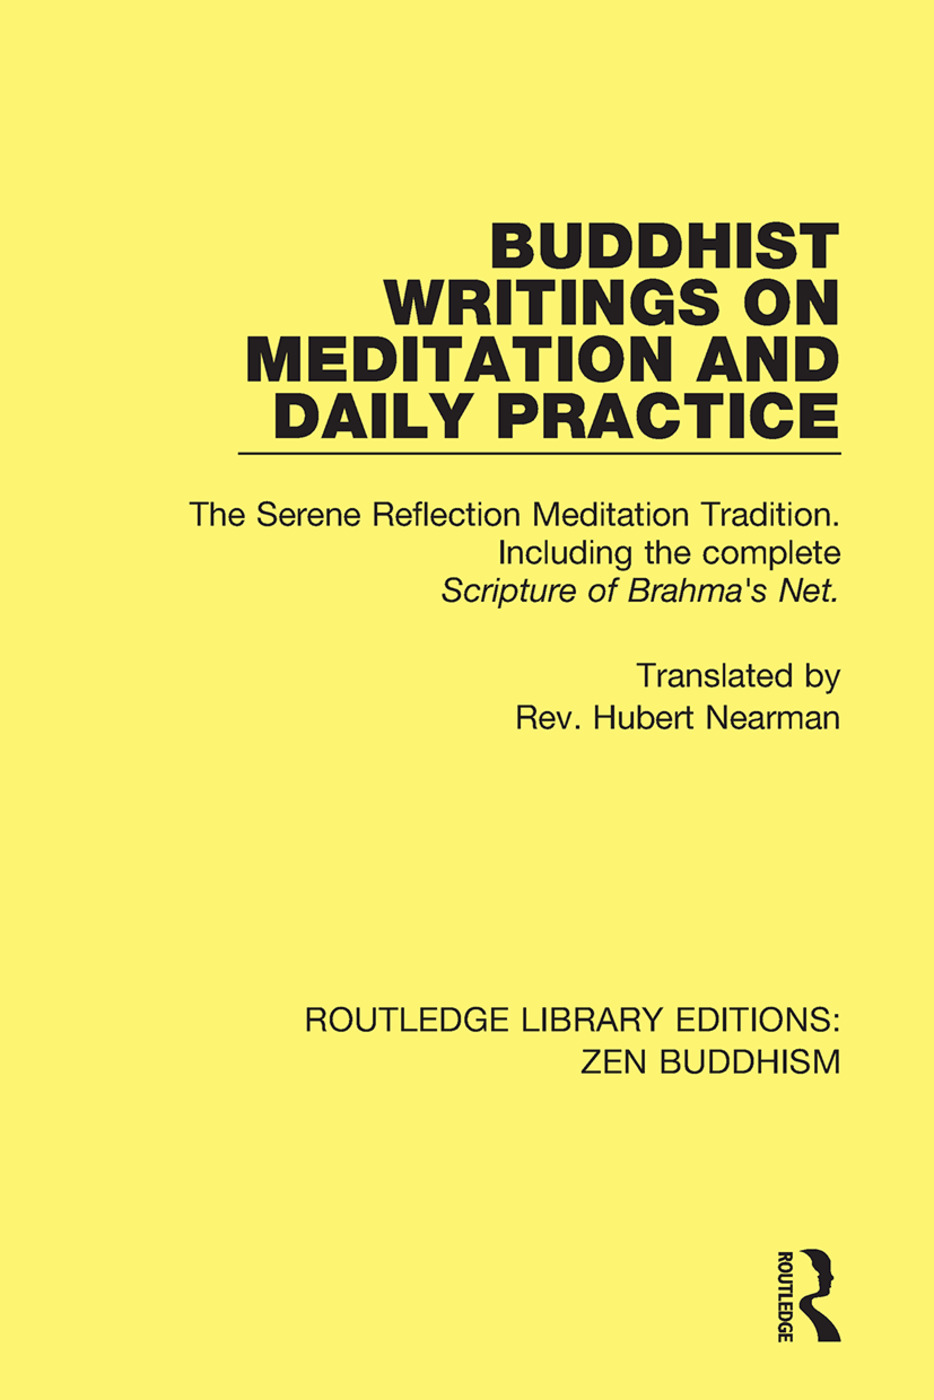 Buddhist Writings on Meditation and Daily Practice: The Serene Reflection Tradition. Including the complete Scripture of Brahma's Net book cover